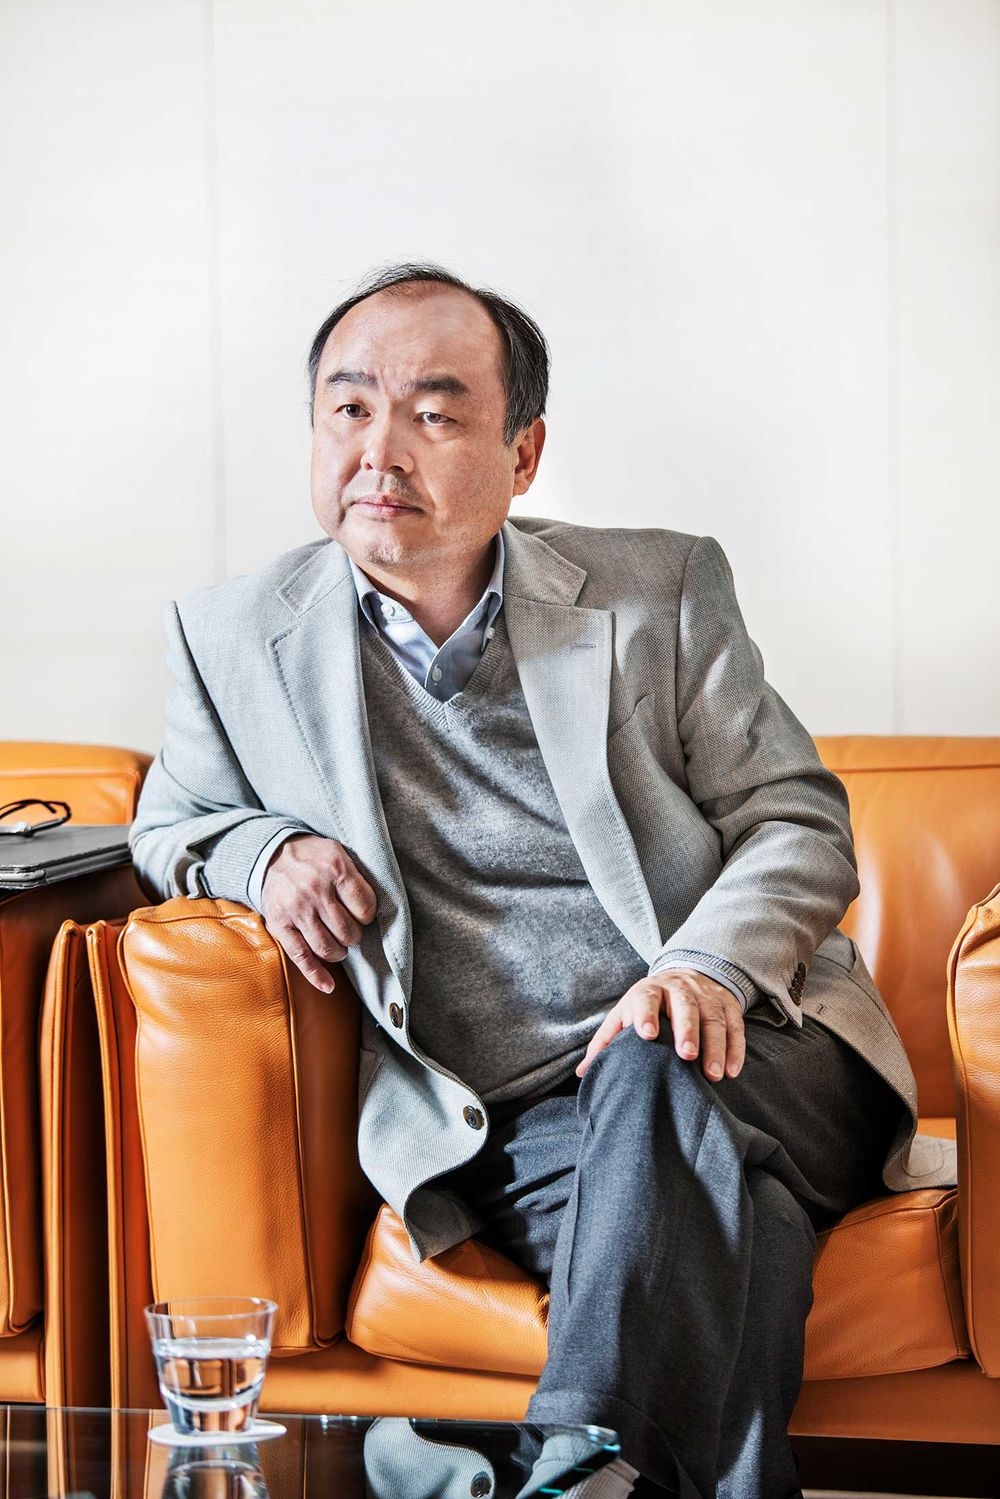 son softbank and his 100 billion blitz on silicon valley bloomberg